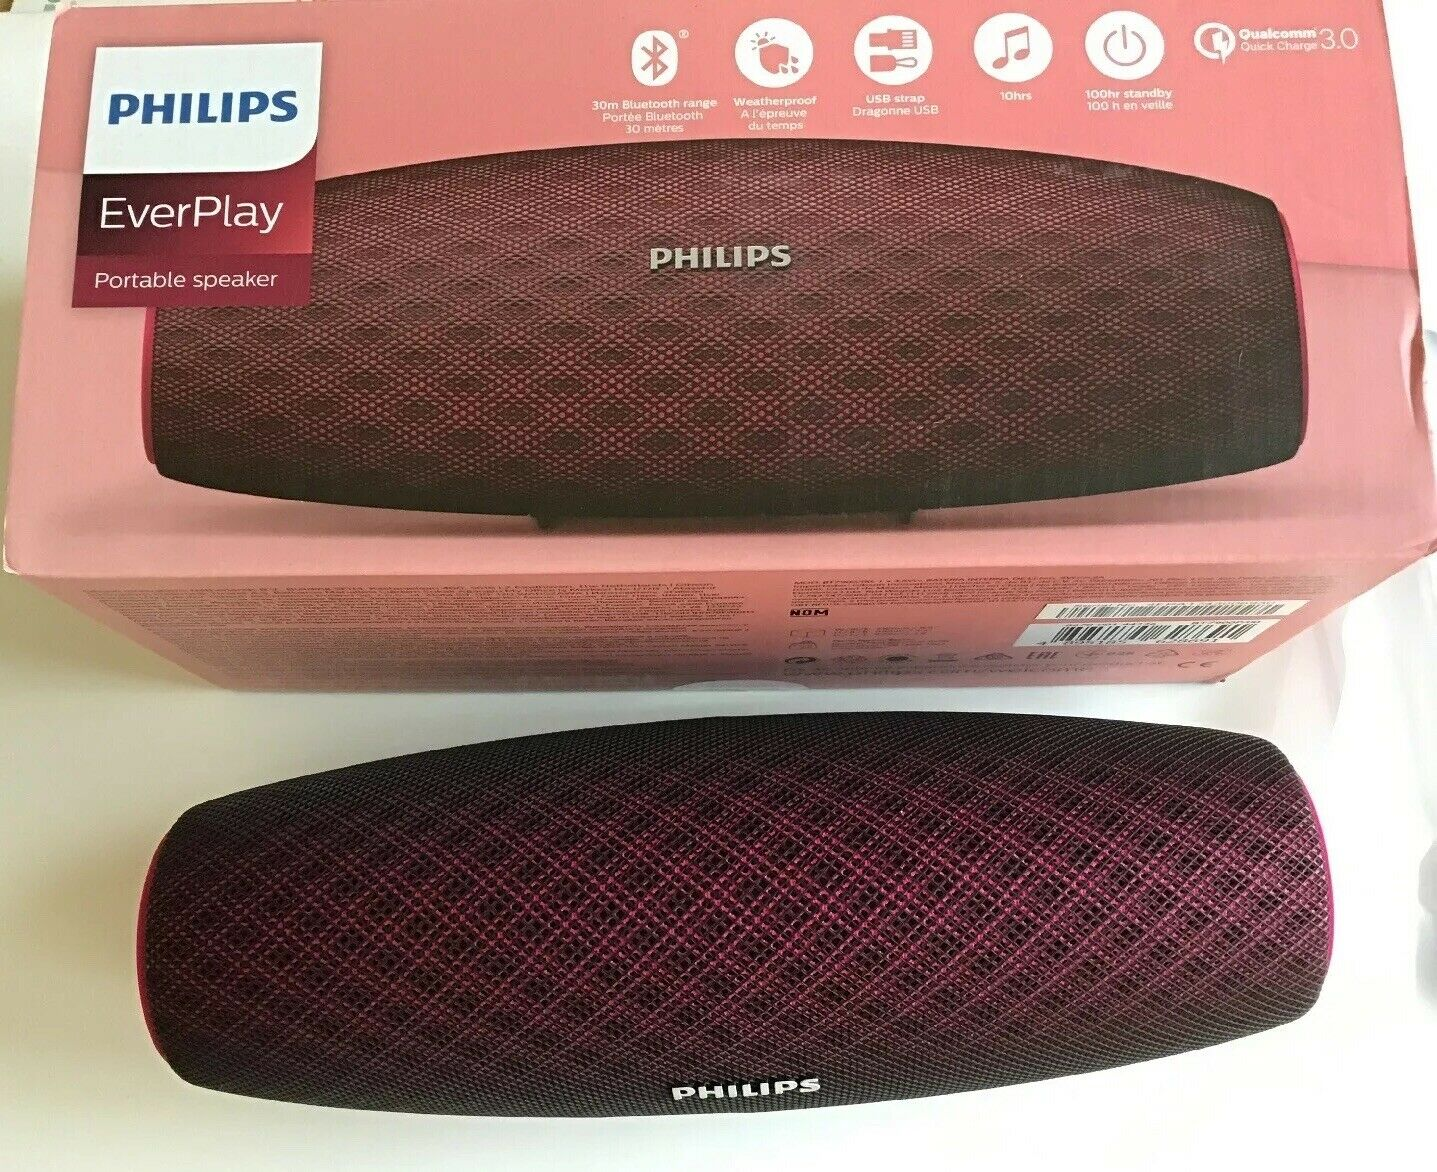 Philips EverPlay Wireless Portable Speaker Phillips Water Resistant Quick Charge